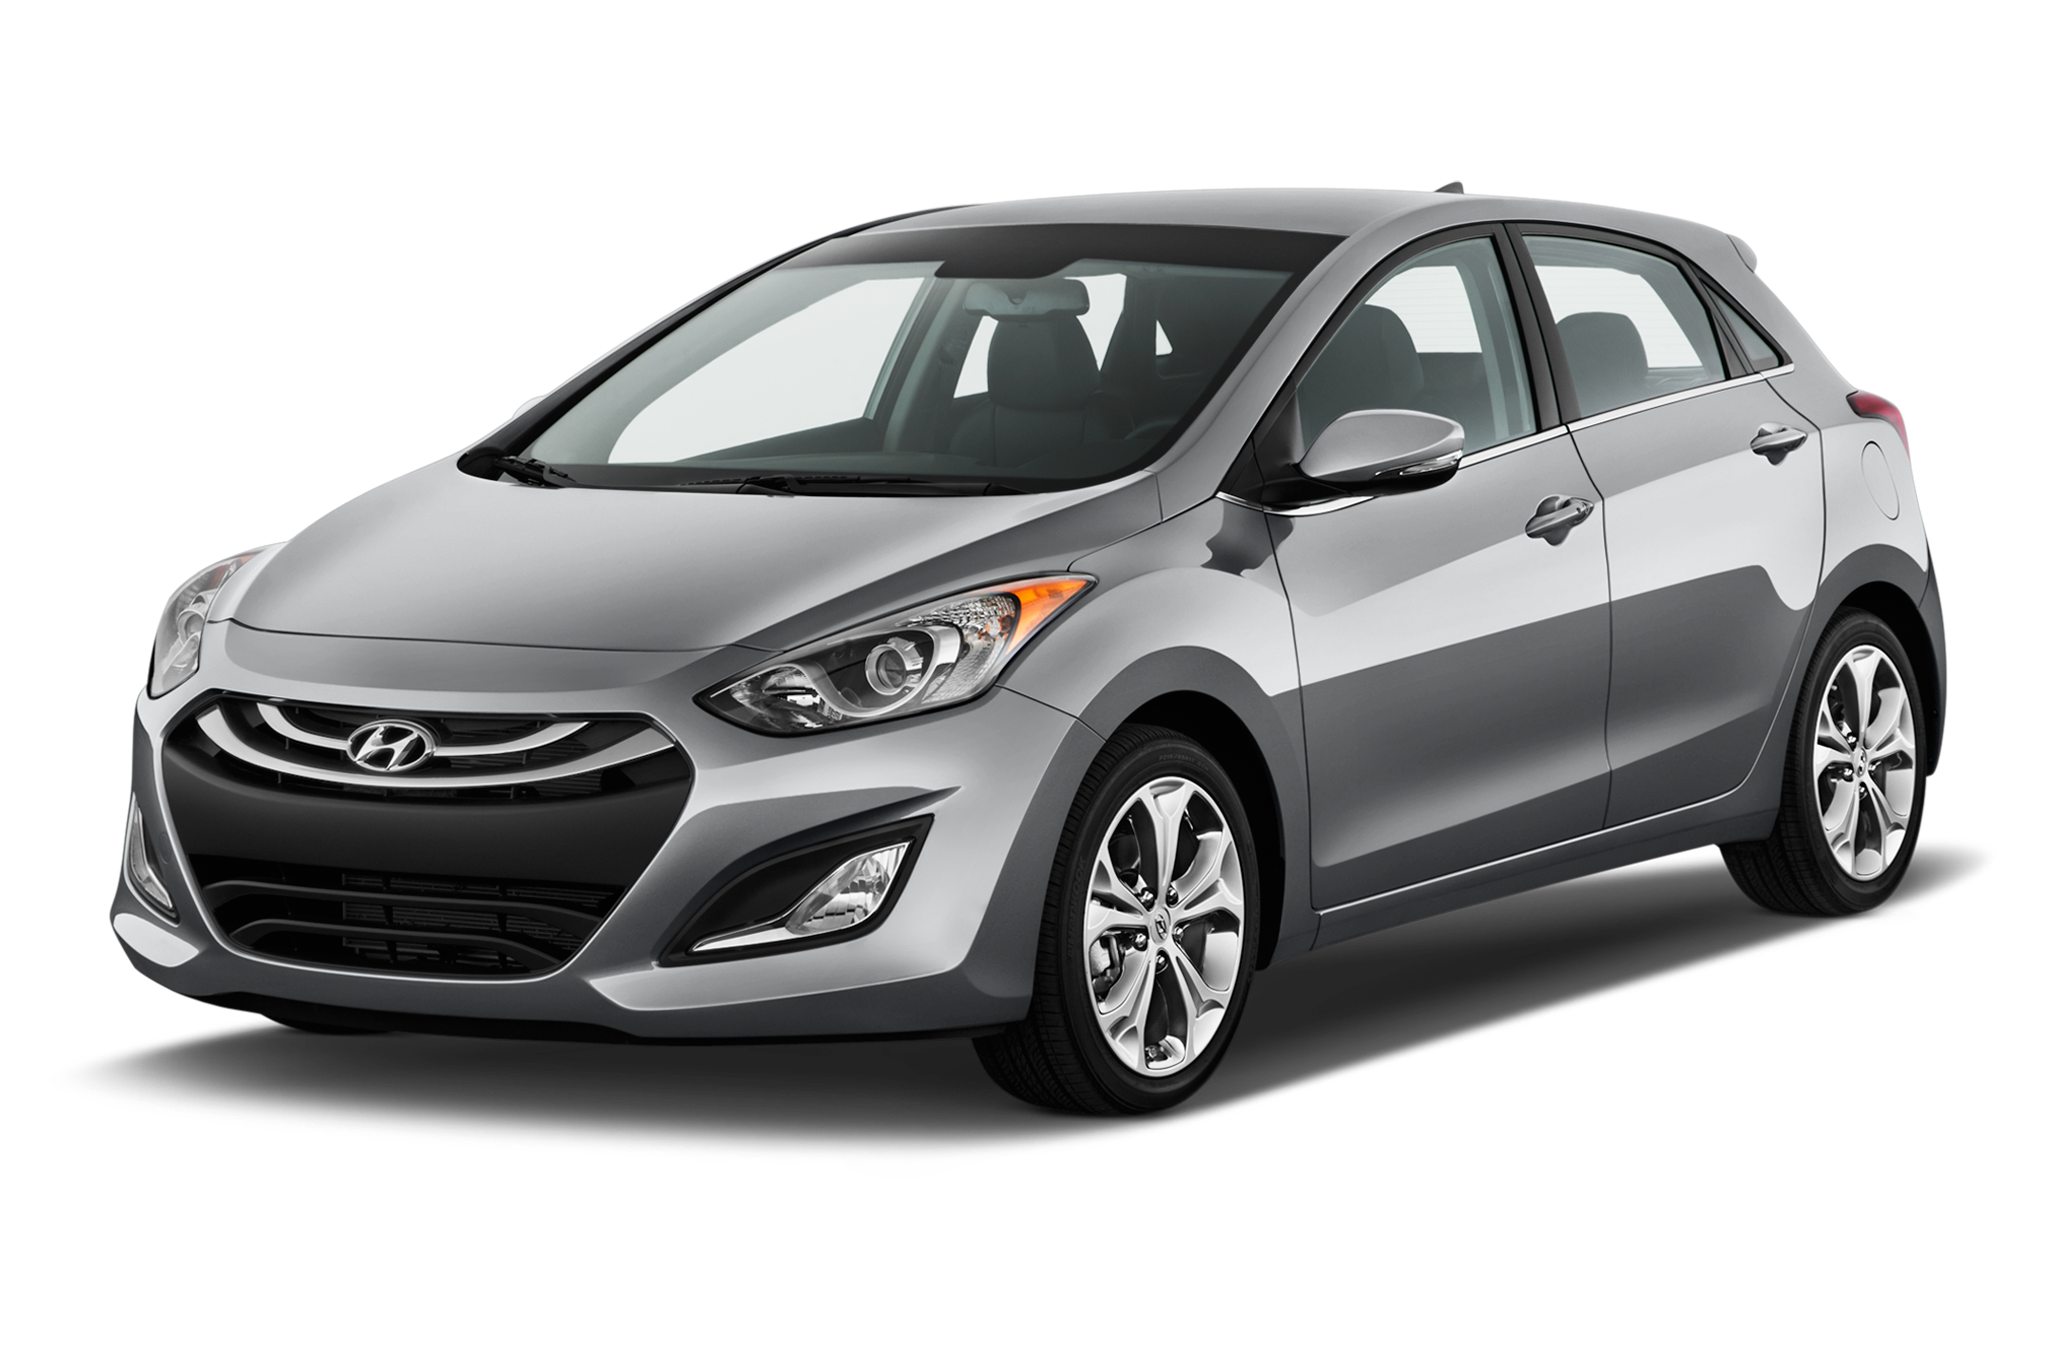 articles hatchback com review elantra hyundai jpg and gt sport cars img first news drive